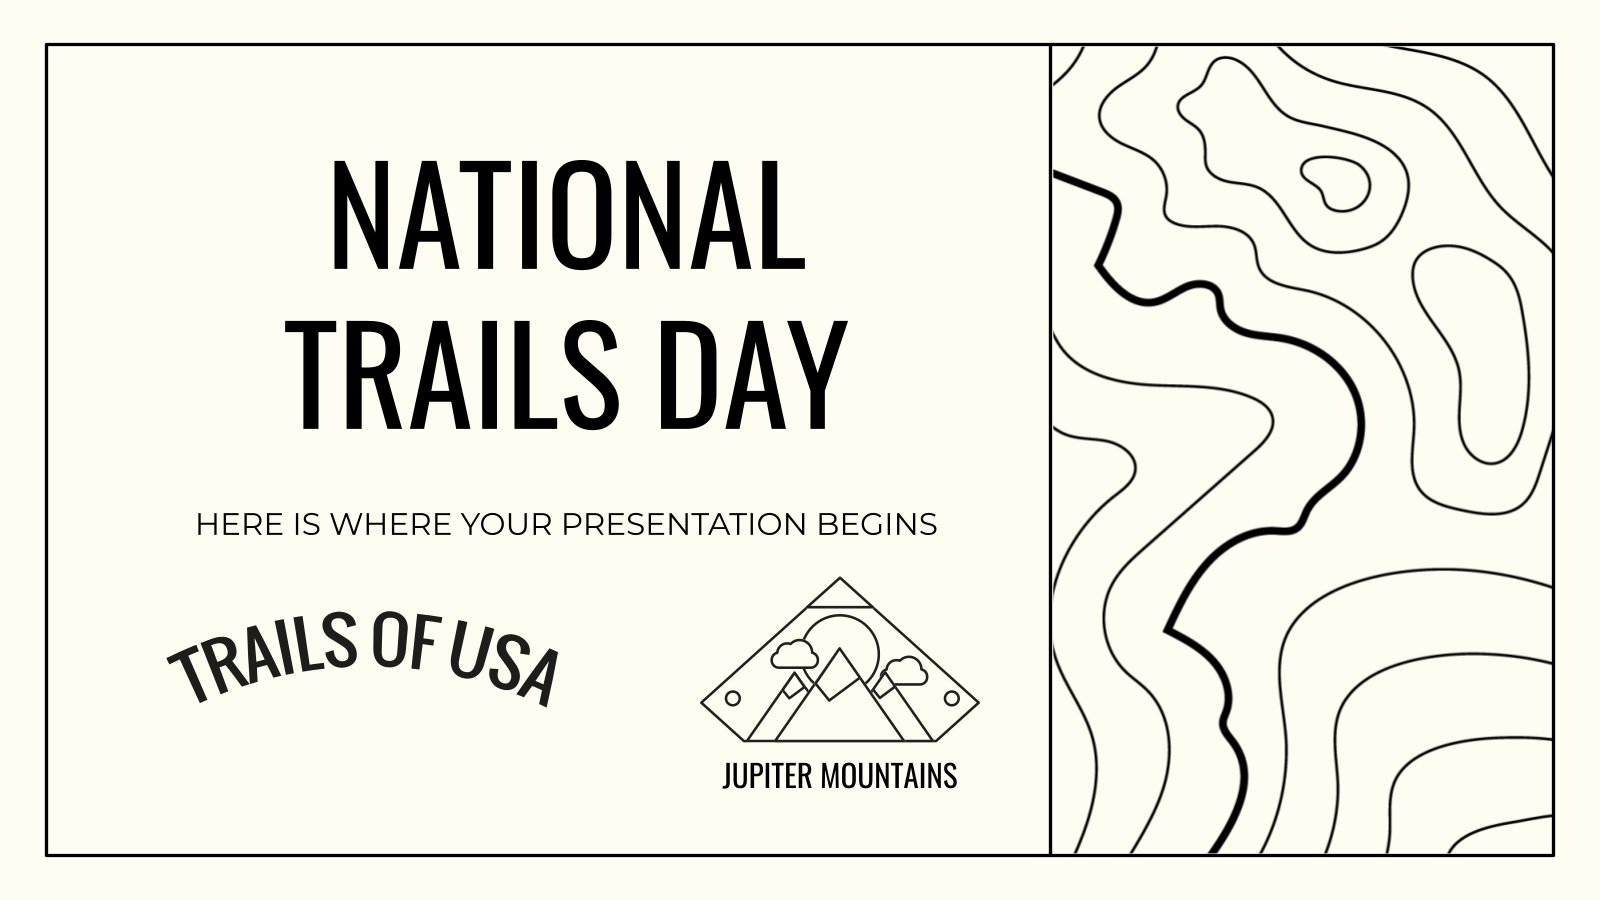 National Trails Day presentation template